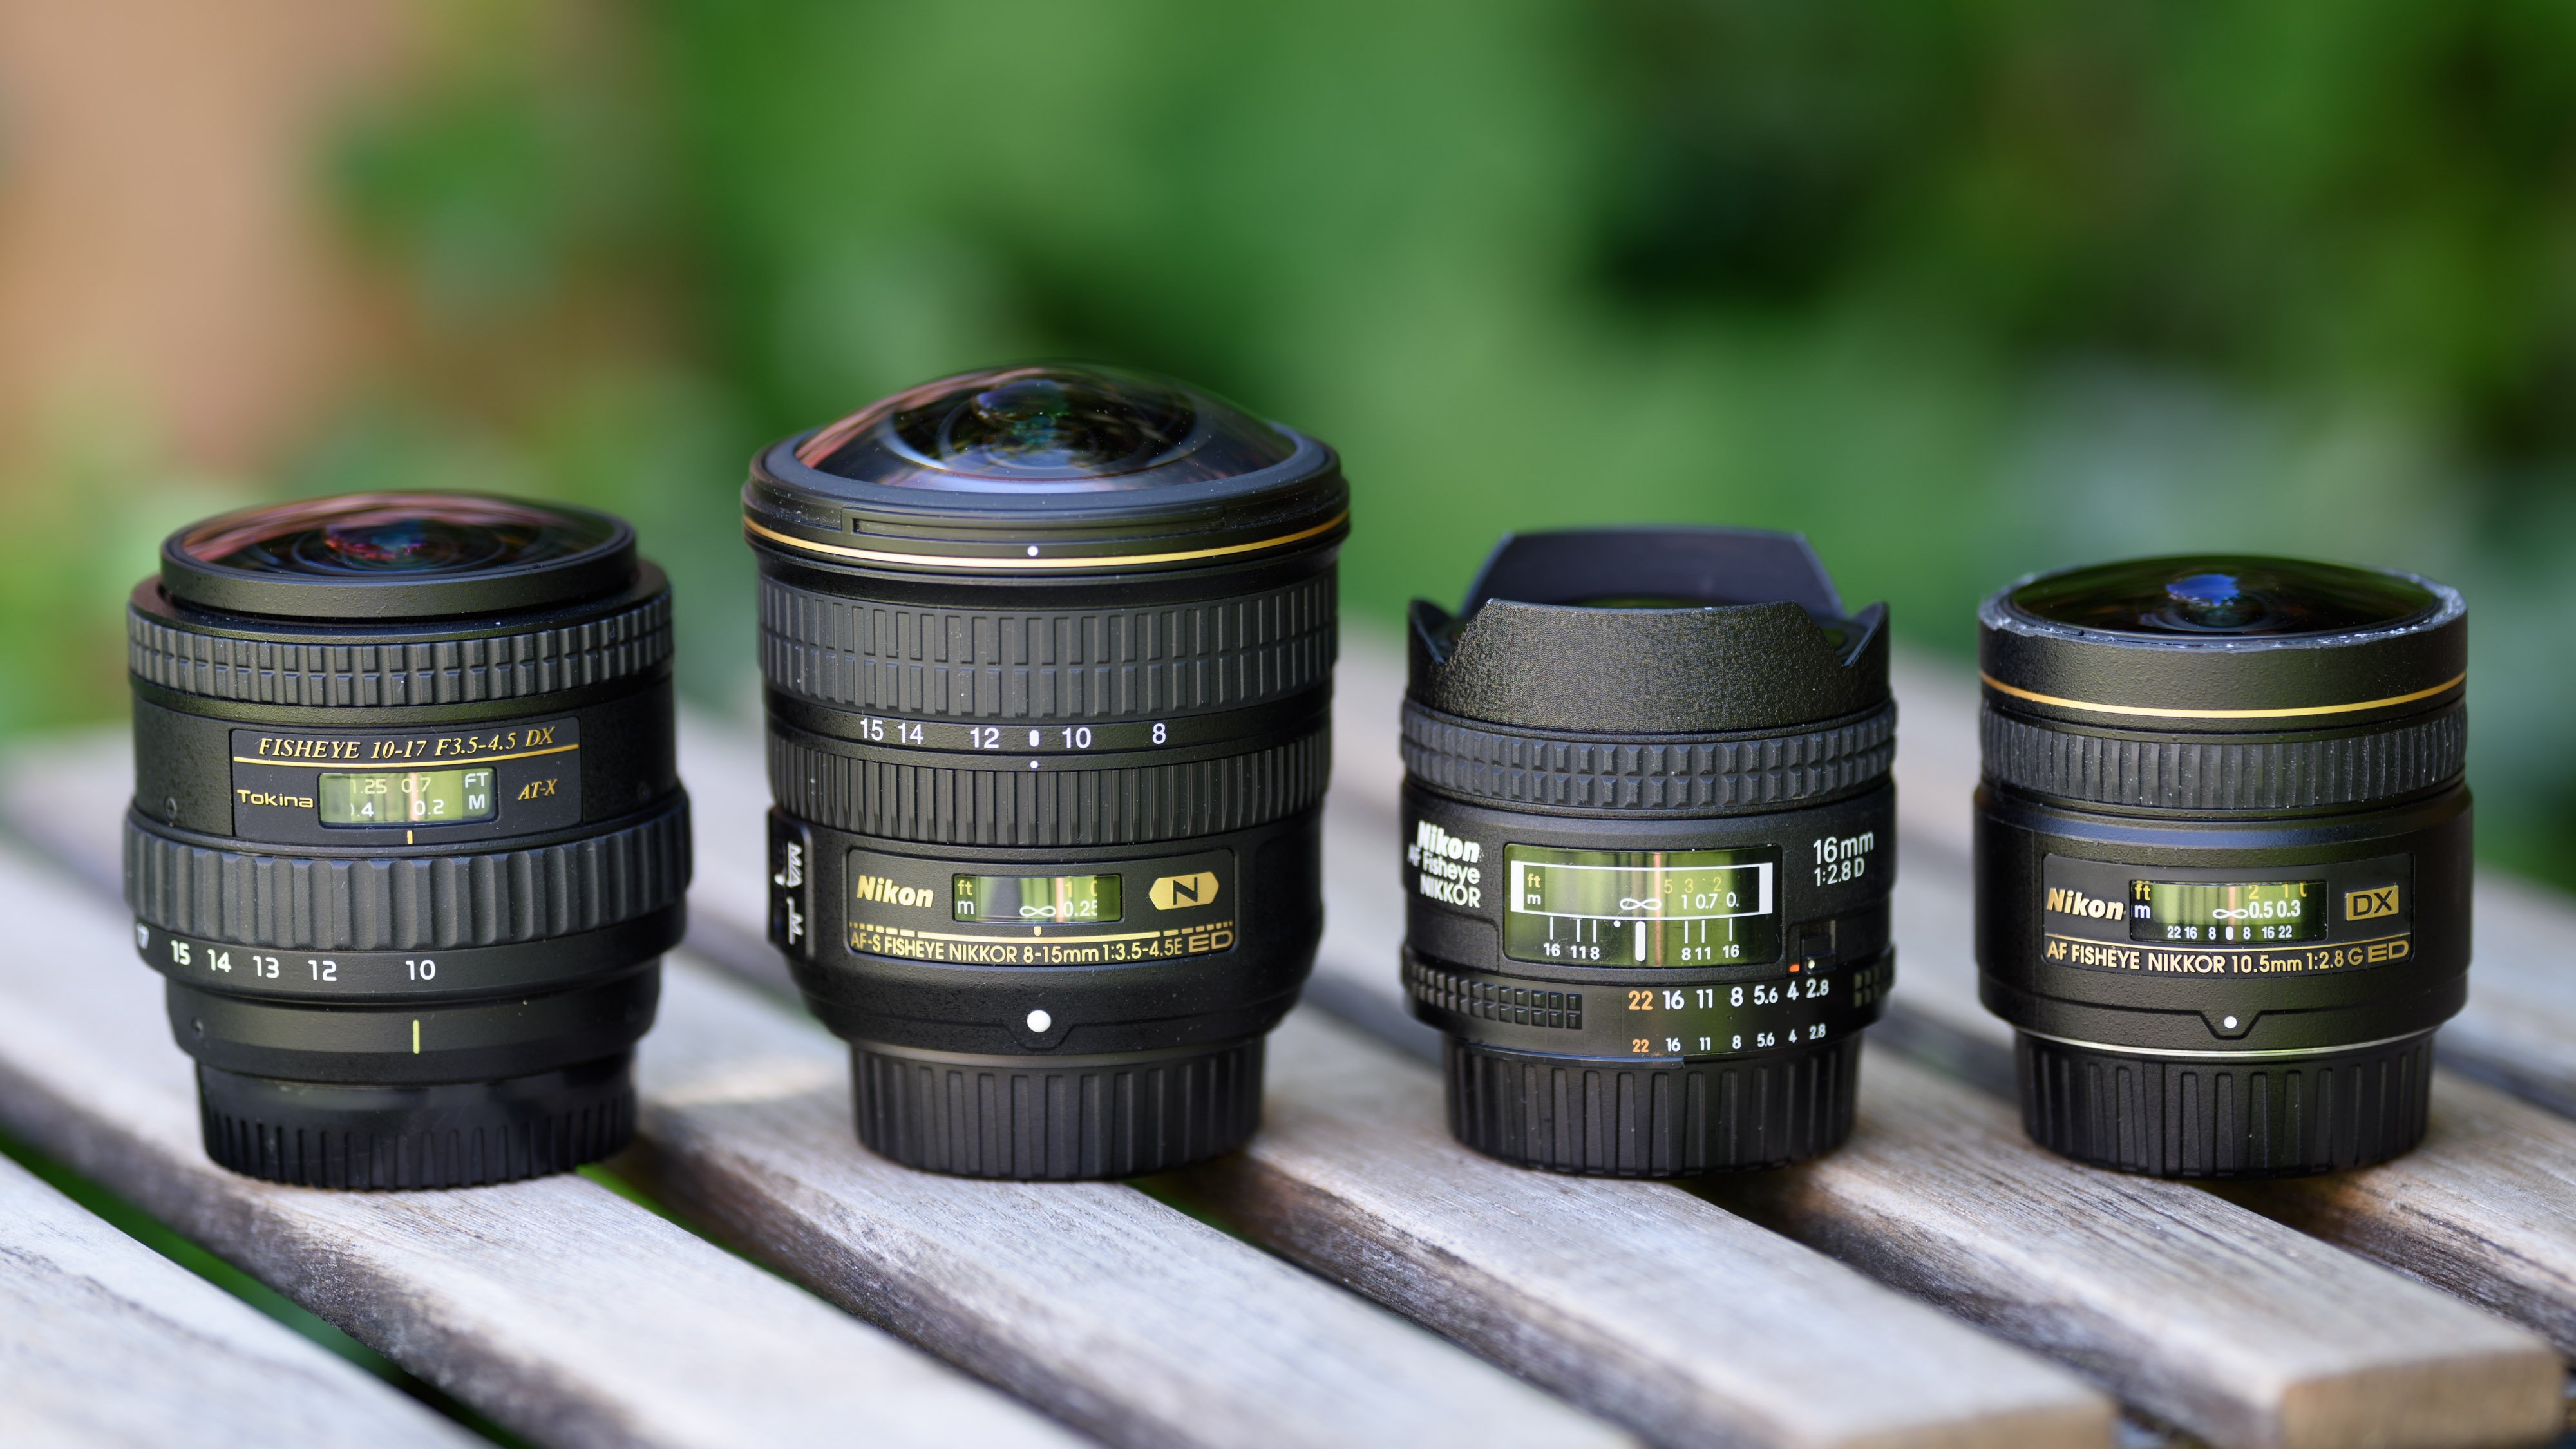 Nikon 8 15mm F35 45 Fisheye Review Verdict Of 5 Cameralabs Af 105mm F 28g If Ed Dx Hero 15 28585